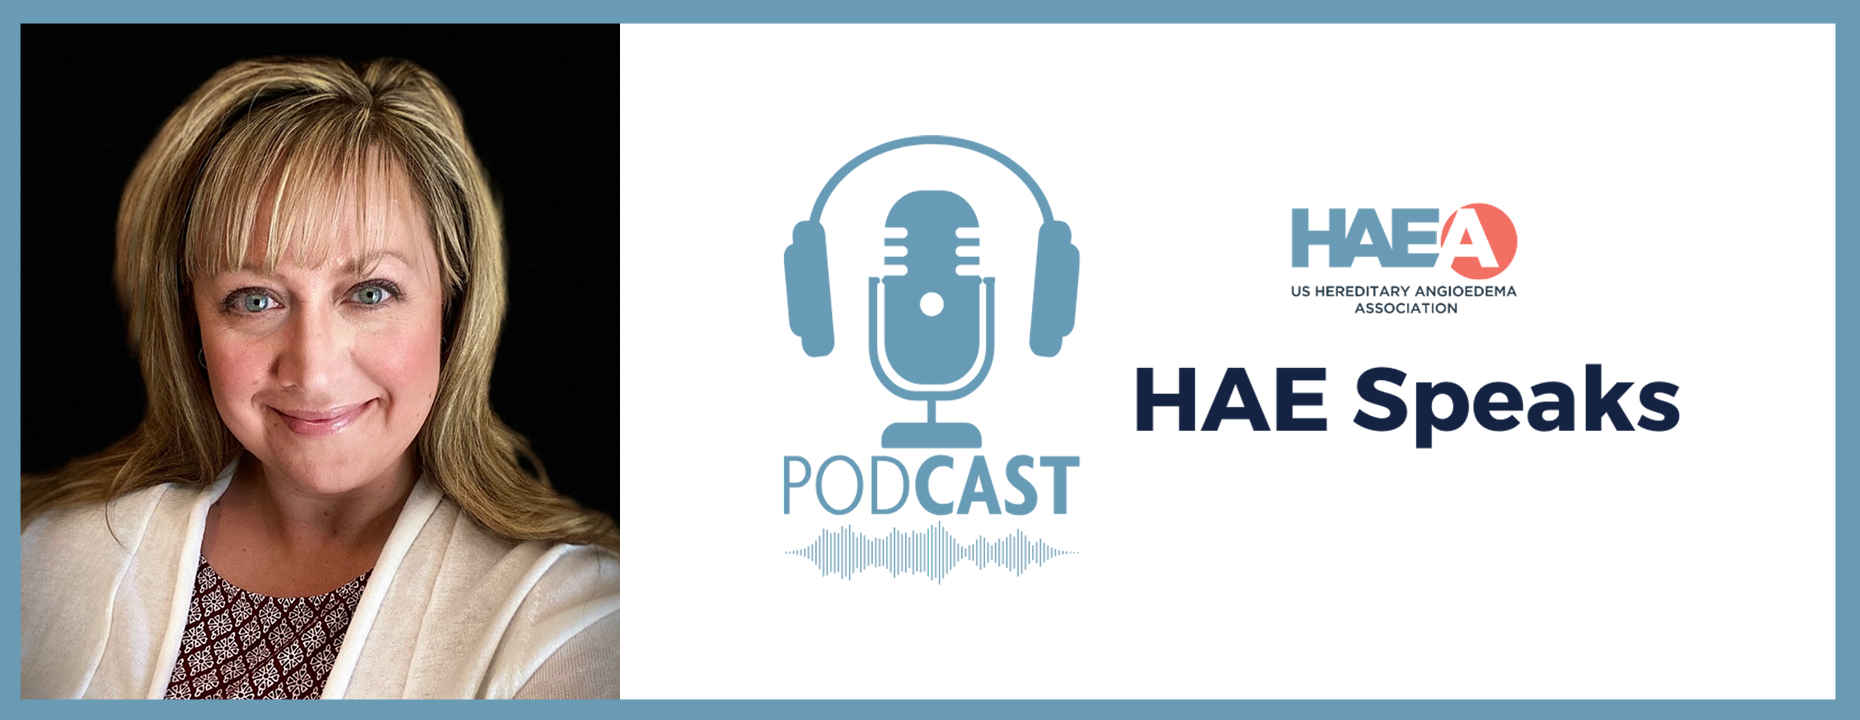 HAE Speaks Podcast